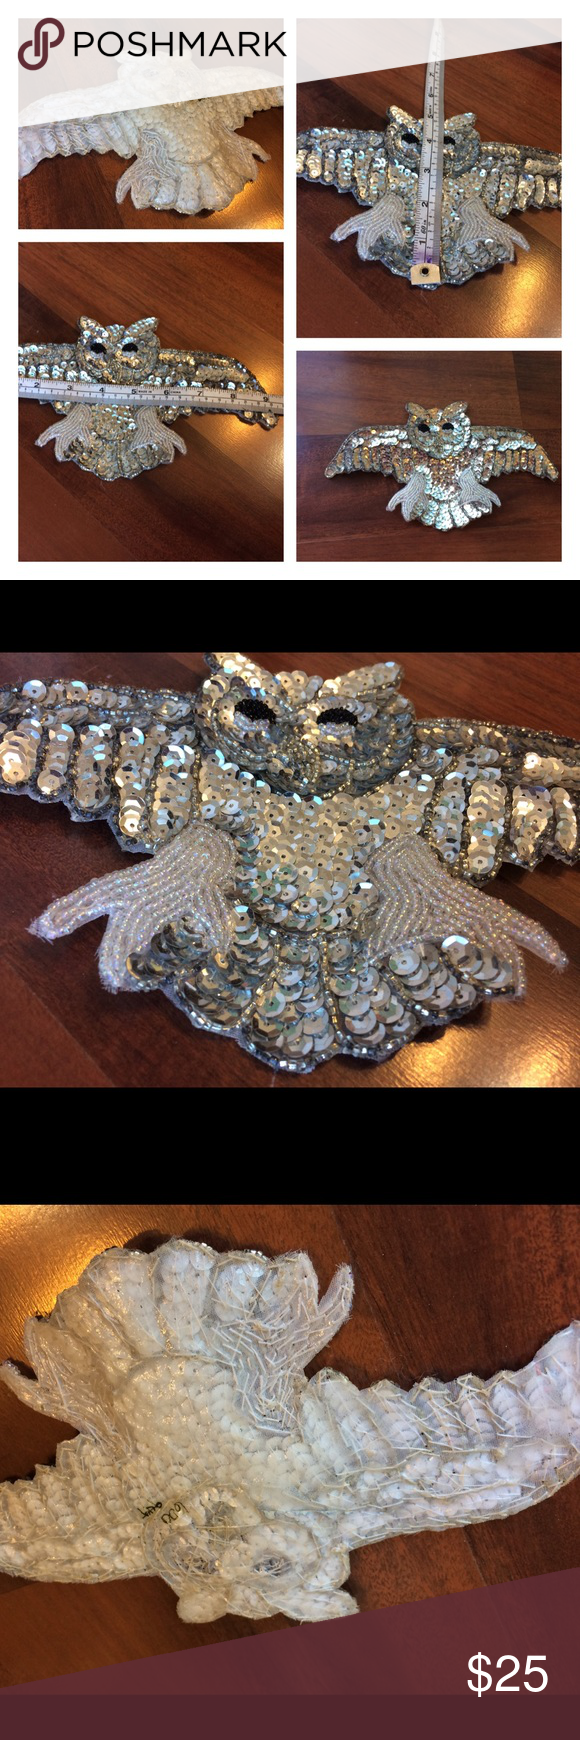 """Awesome Vintage Sequined Owl Sew On Patch 9.5""""x5"""" silver sequins & pearl colored beads!!!!! all beads in tact! So many cool things you can do with it! Vintage Accessories"""